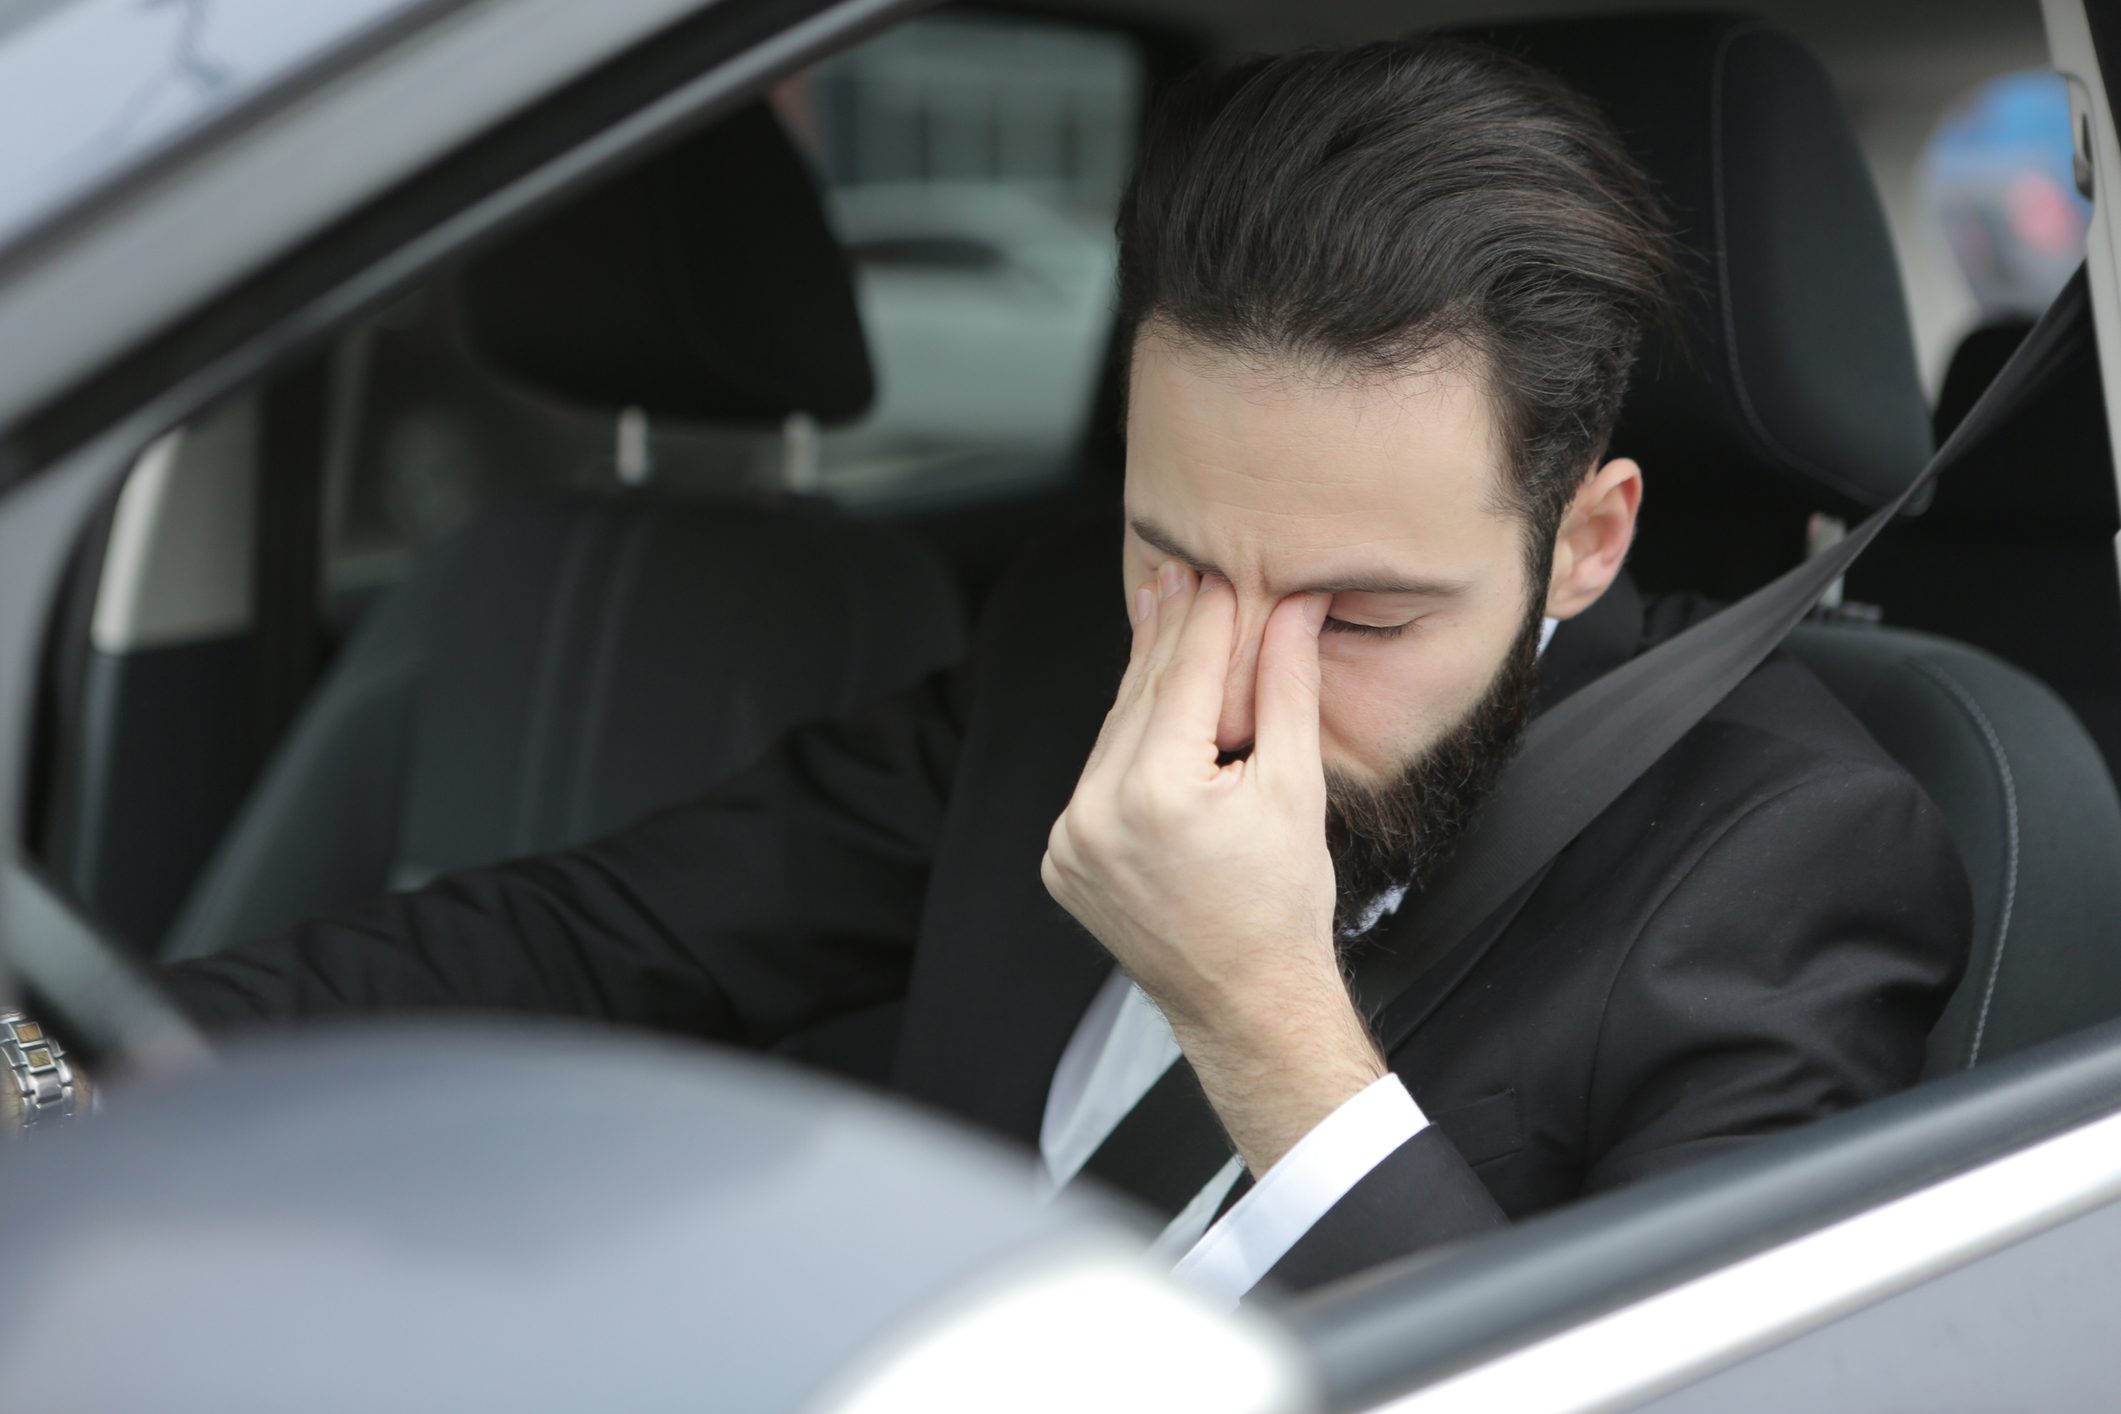 Young man frustrated sat in a car